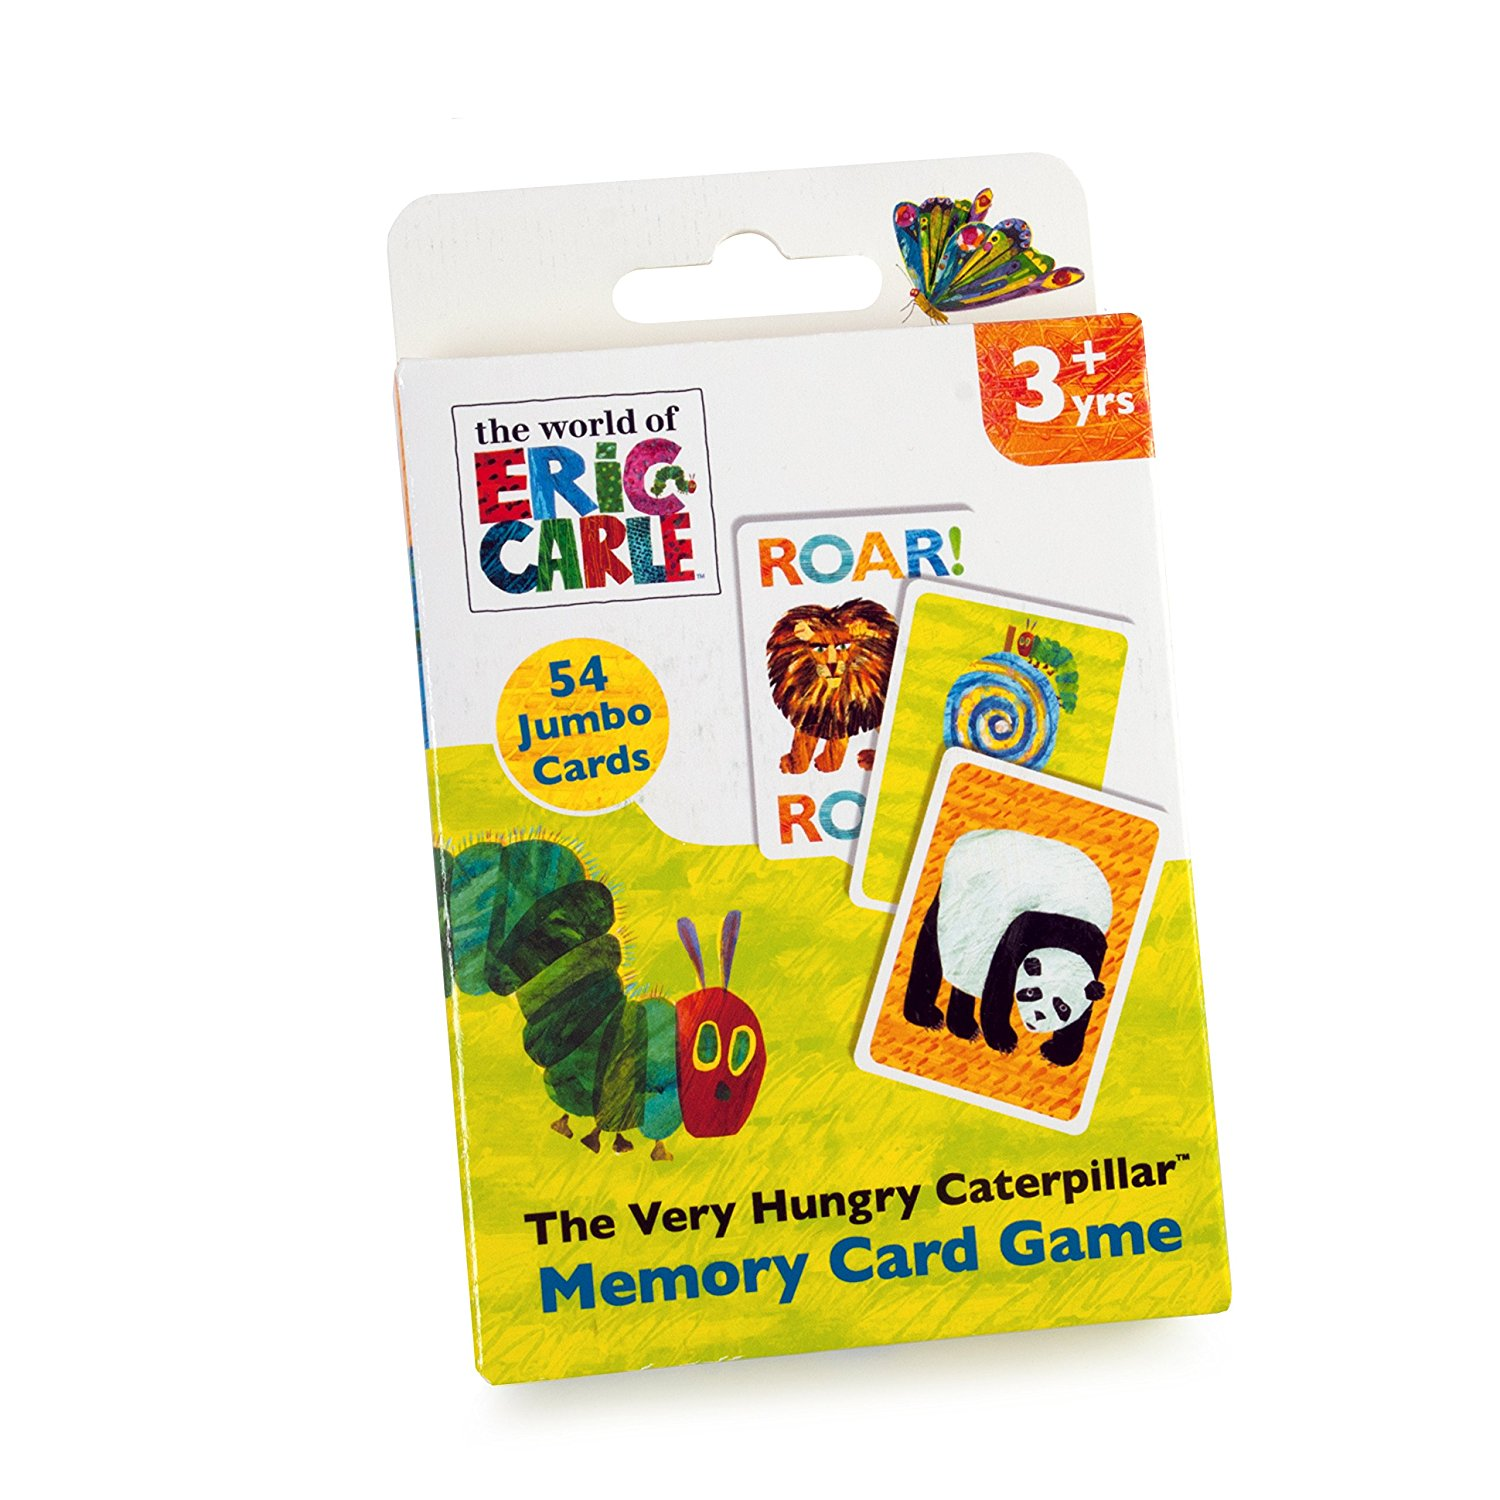 The Very Hungry Caterpillar Memory Card Game